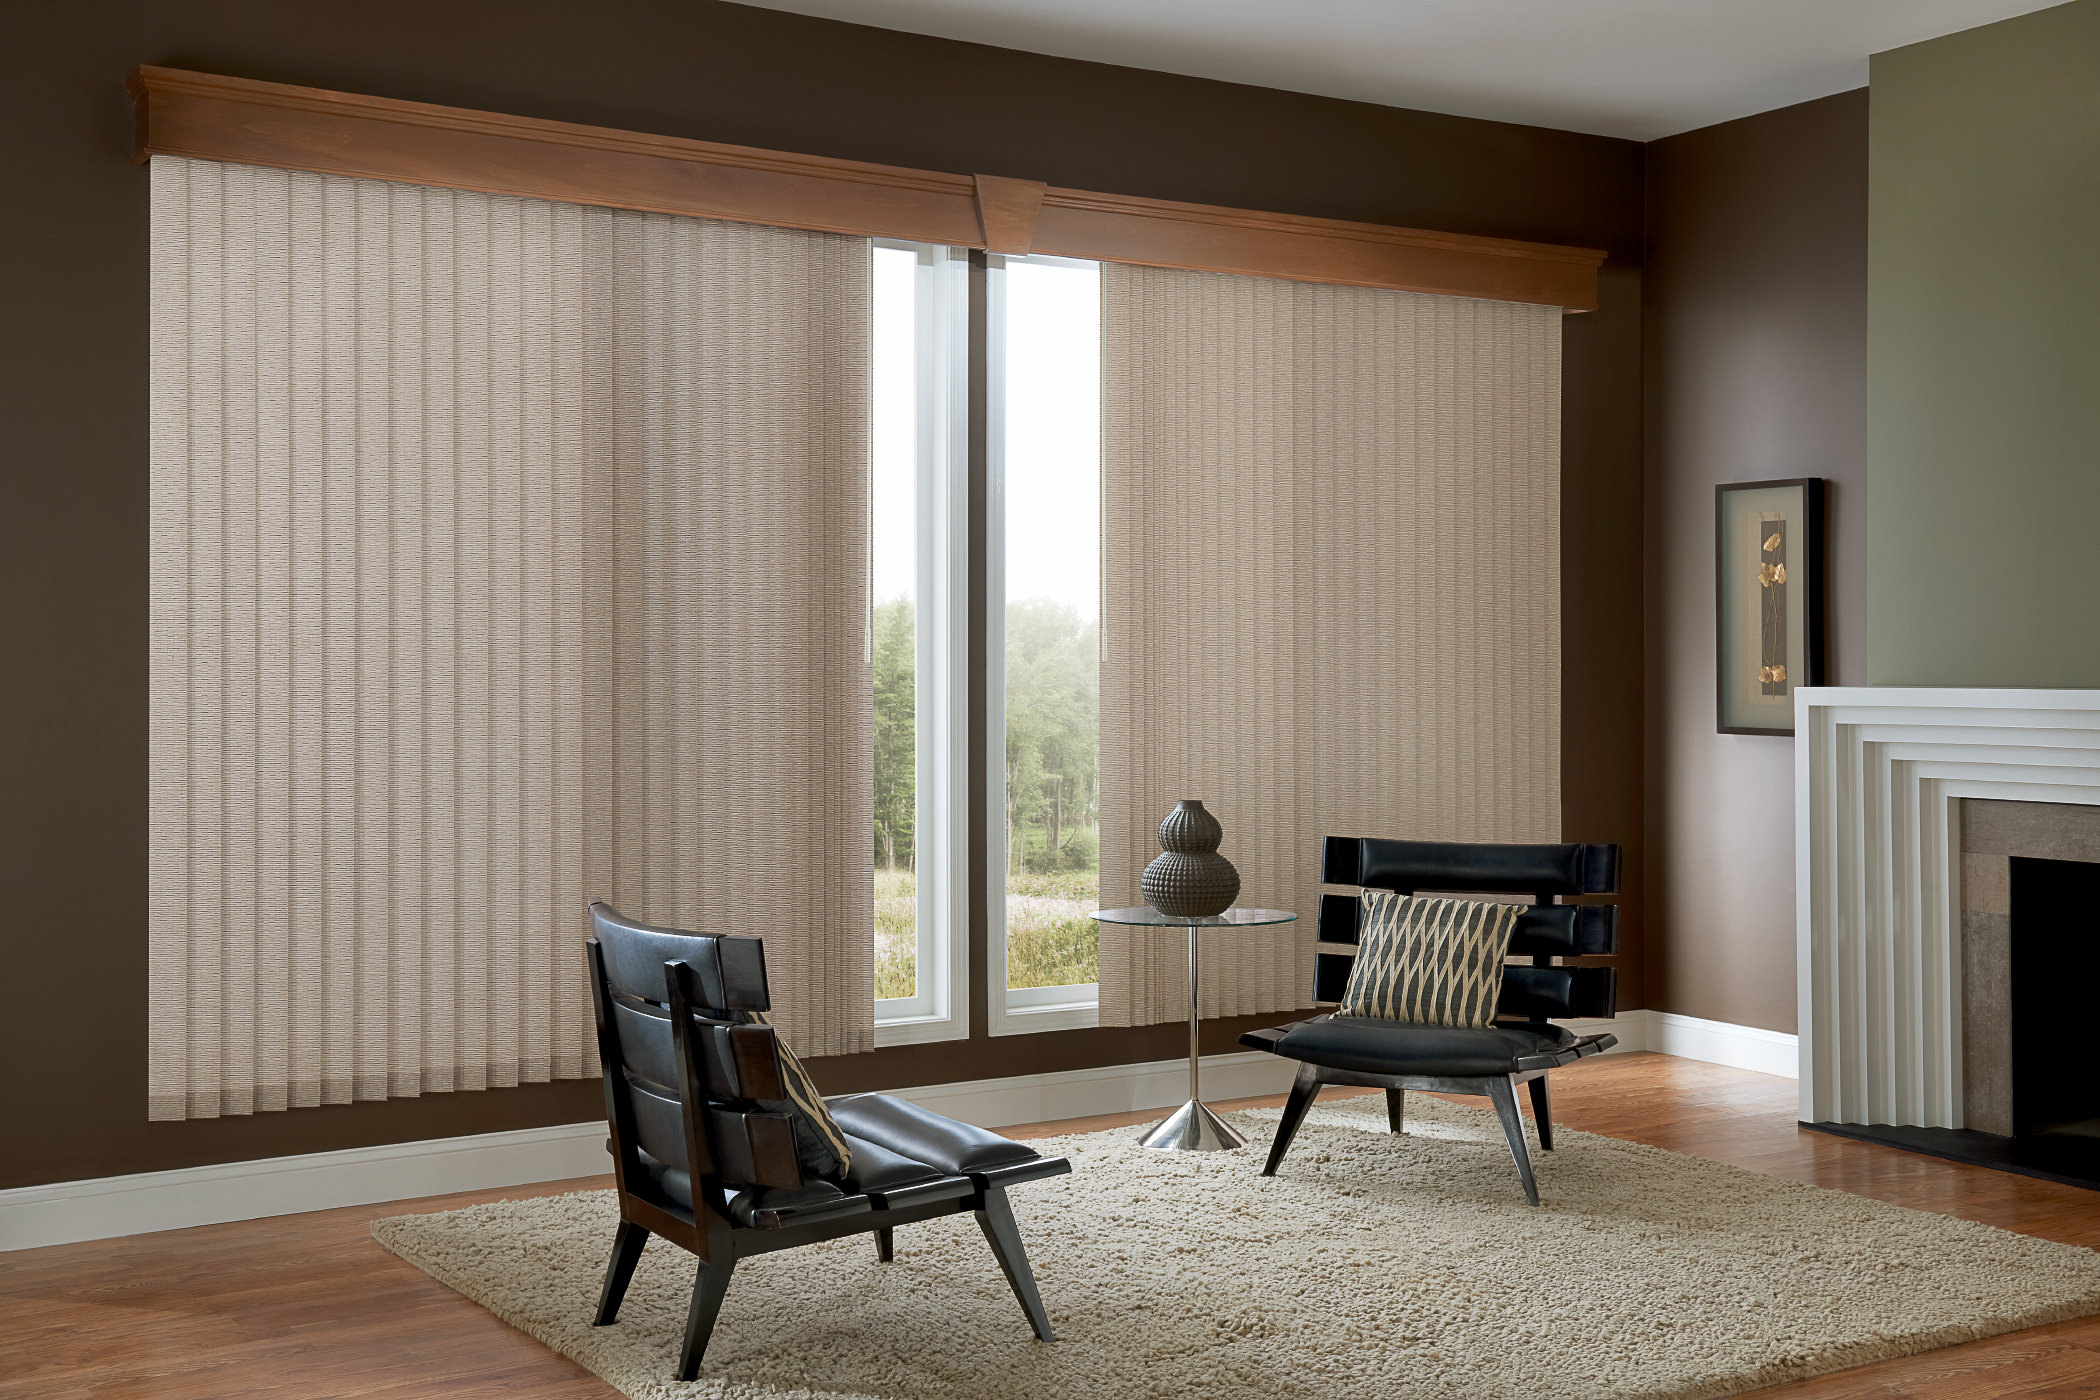 location blinds attractive cord blind venetian delightful string indoor color faux horizontal mahogany accessories appealing draw wood